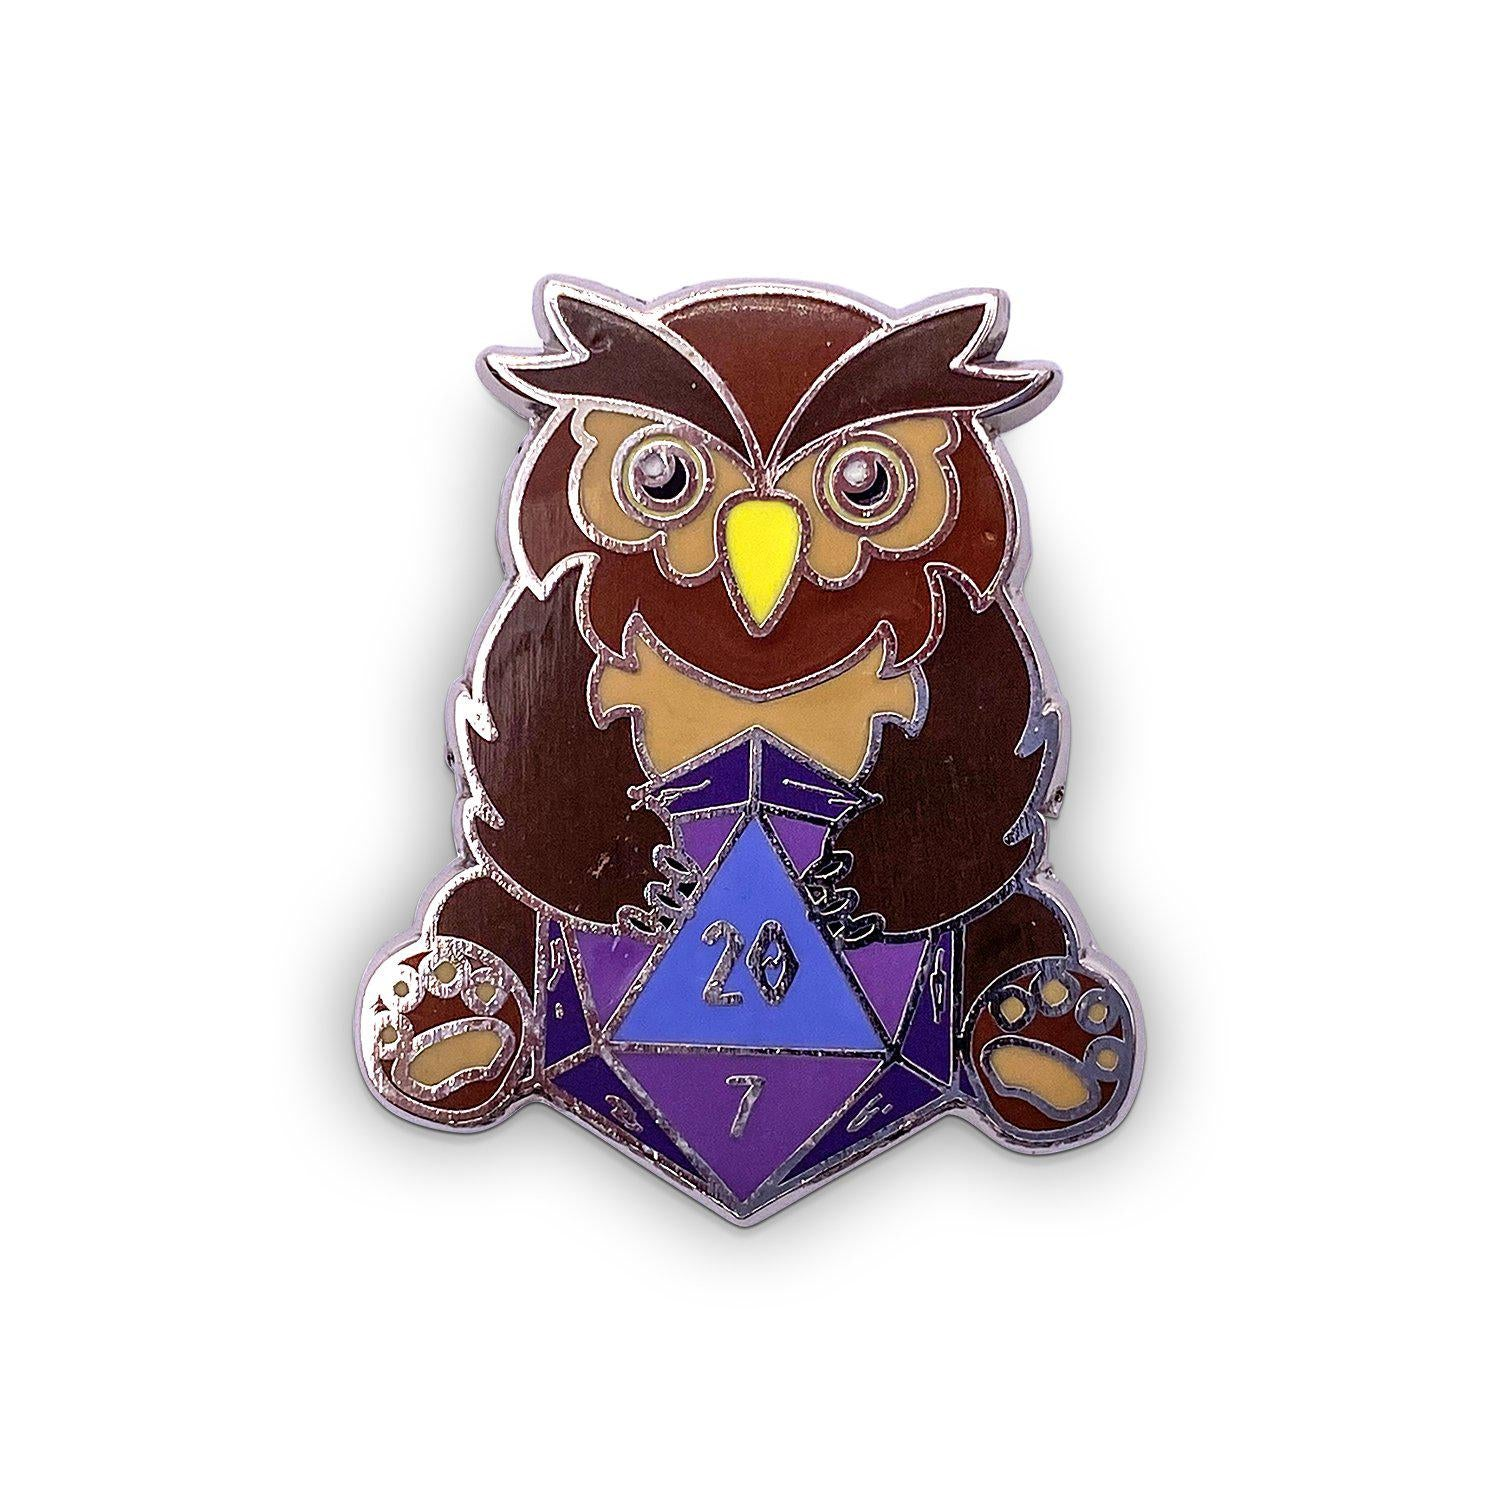 Owlbear - Hard Enamel Adventure Dice Pin Metal by Norse Foundry